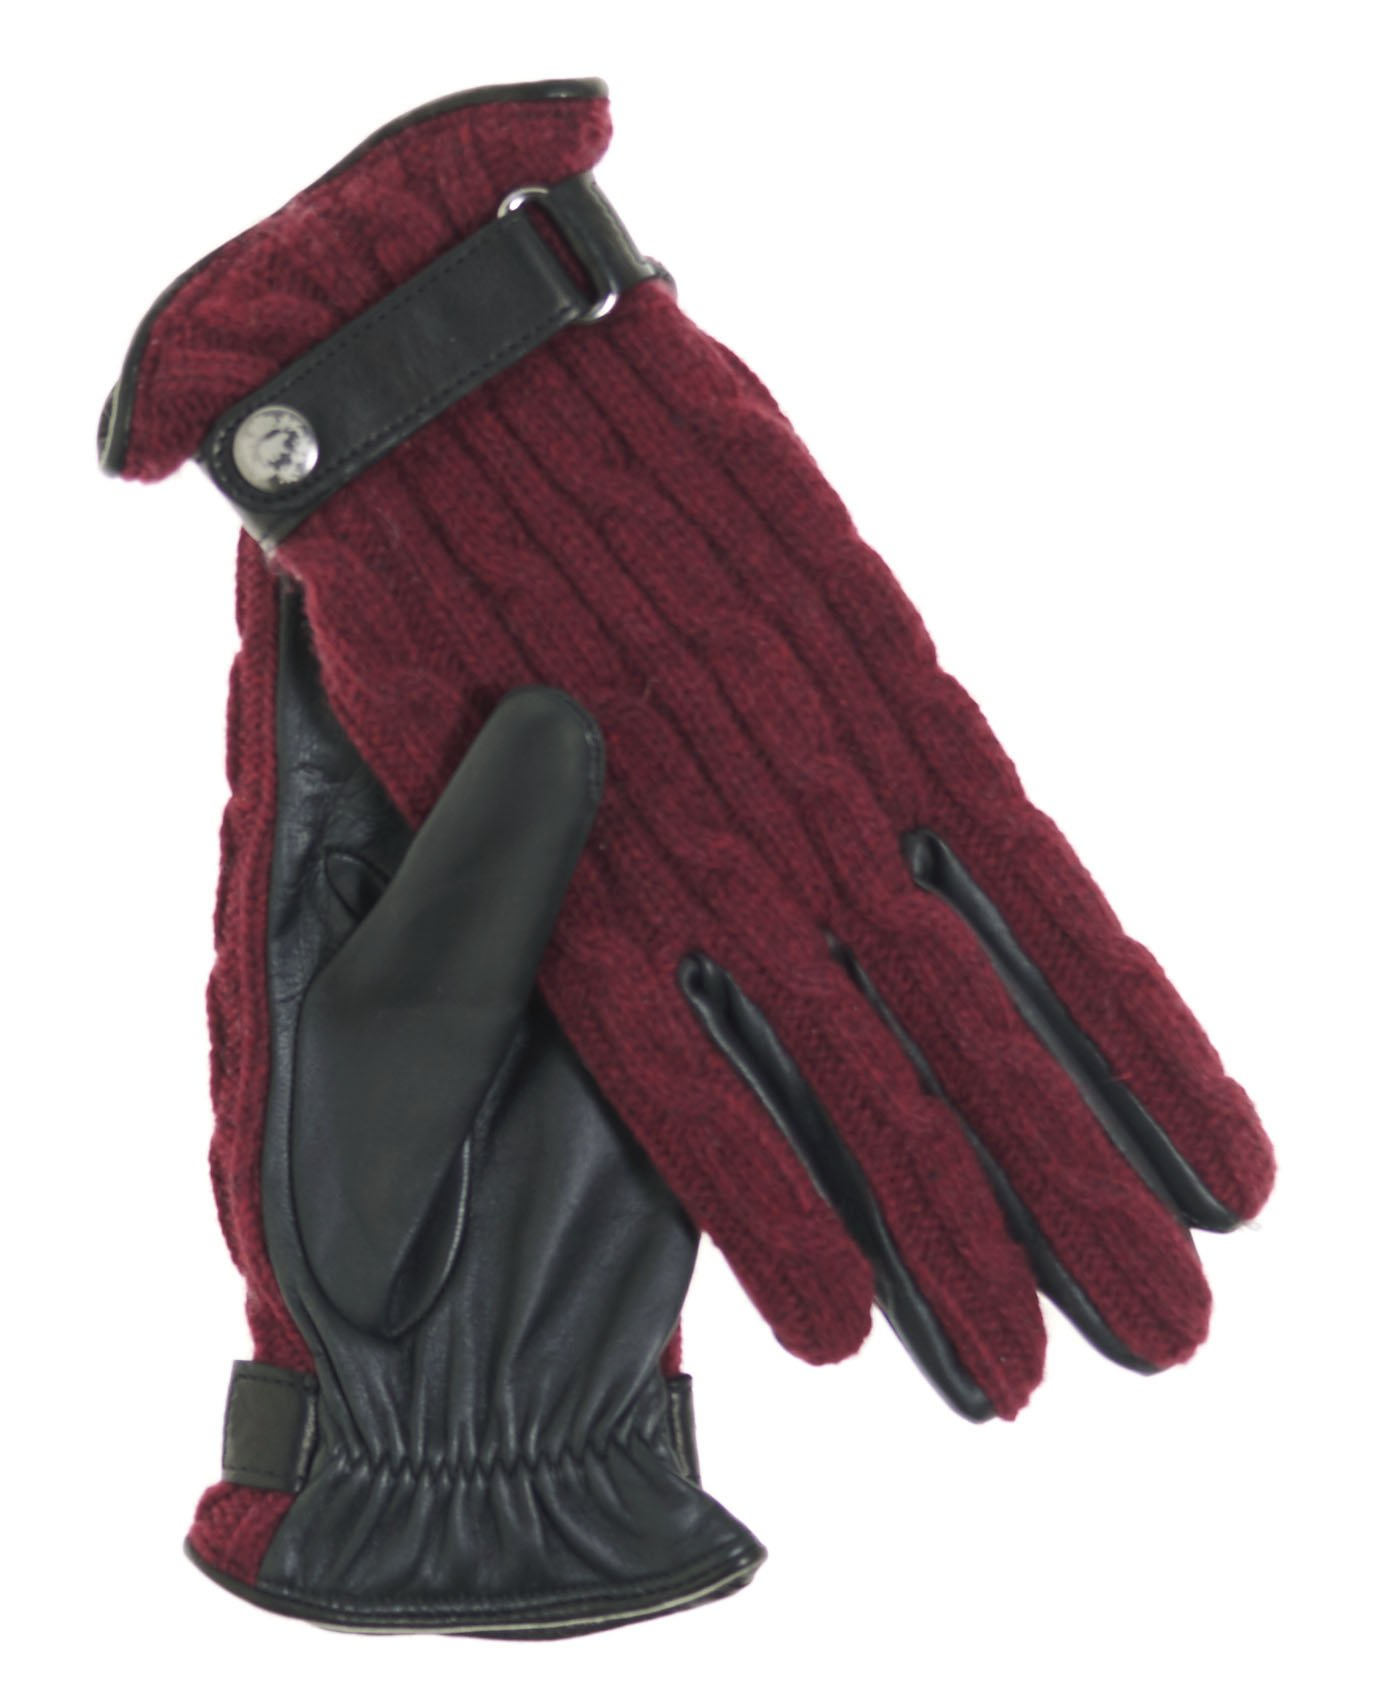 Fratelli Orsini Women's Italian Cable Knit Cashmere and Leather Winter Gloves Size 8 Color Red